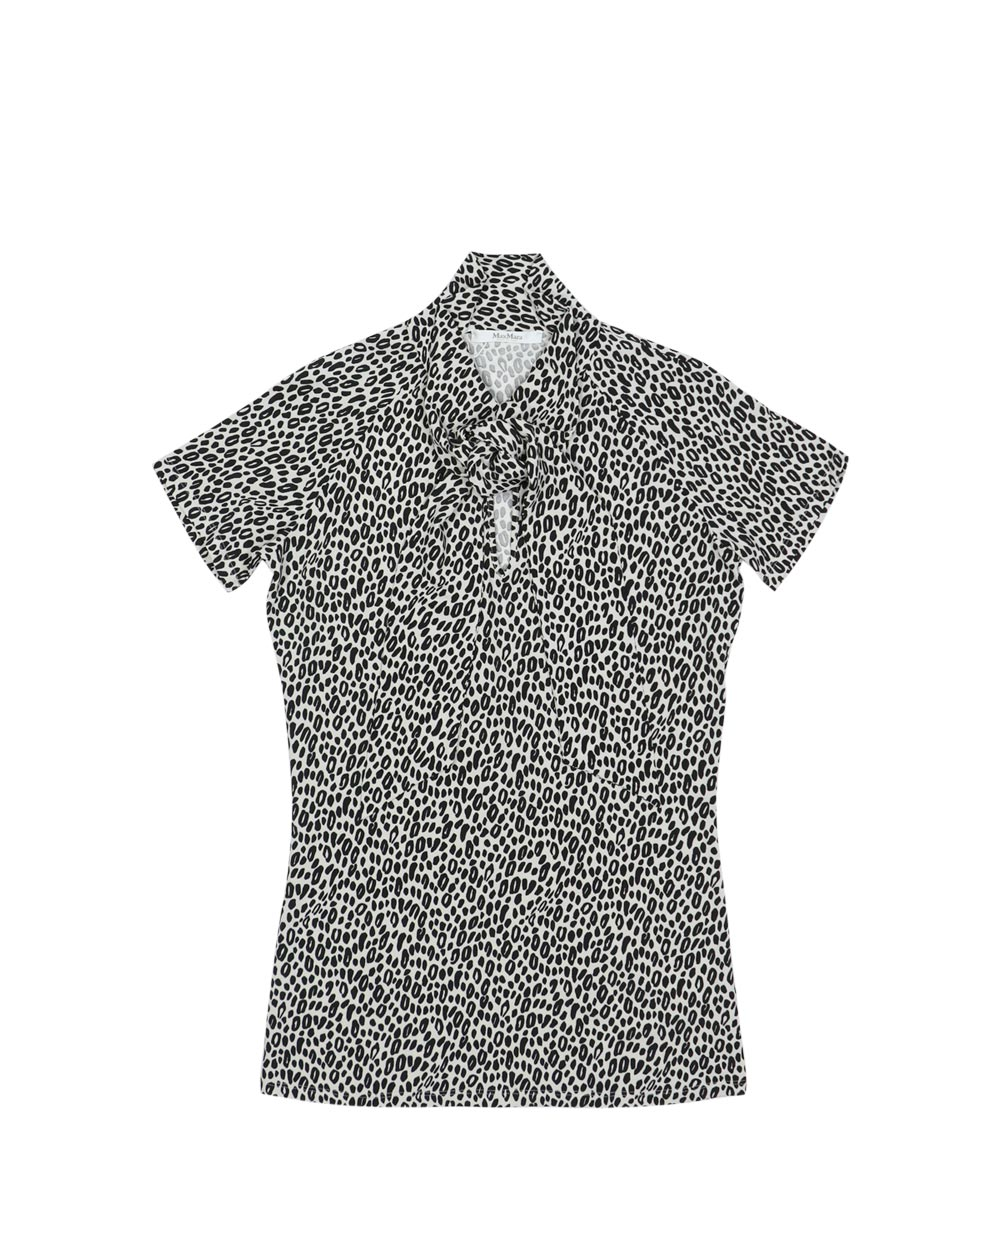 Printed Pattern Shirt